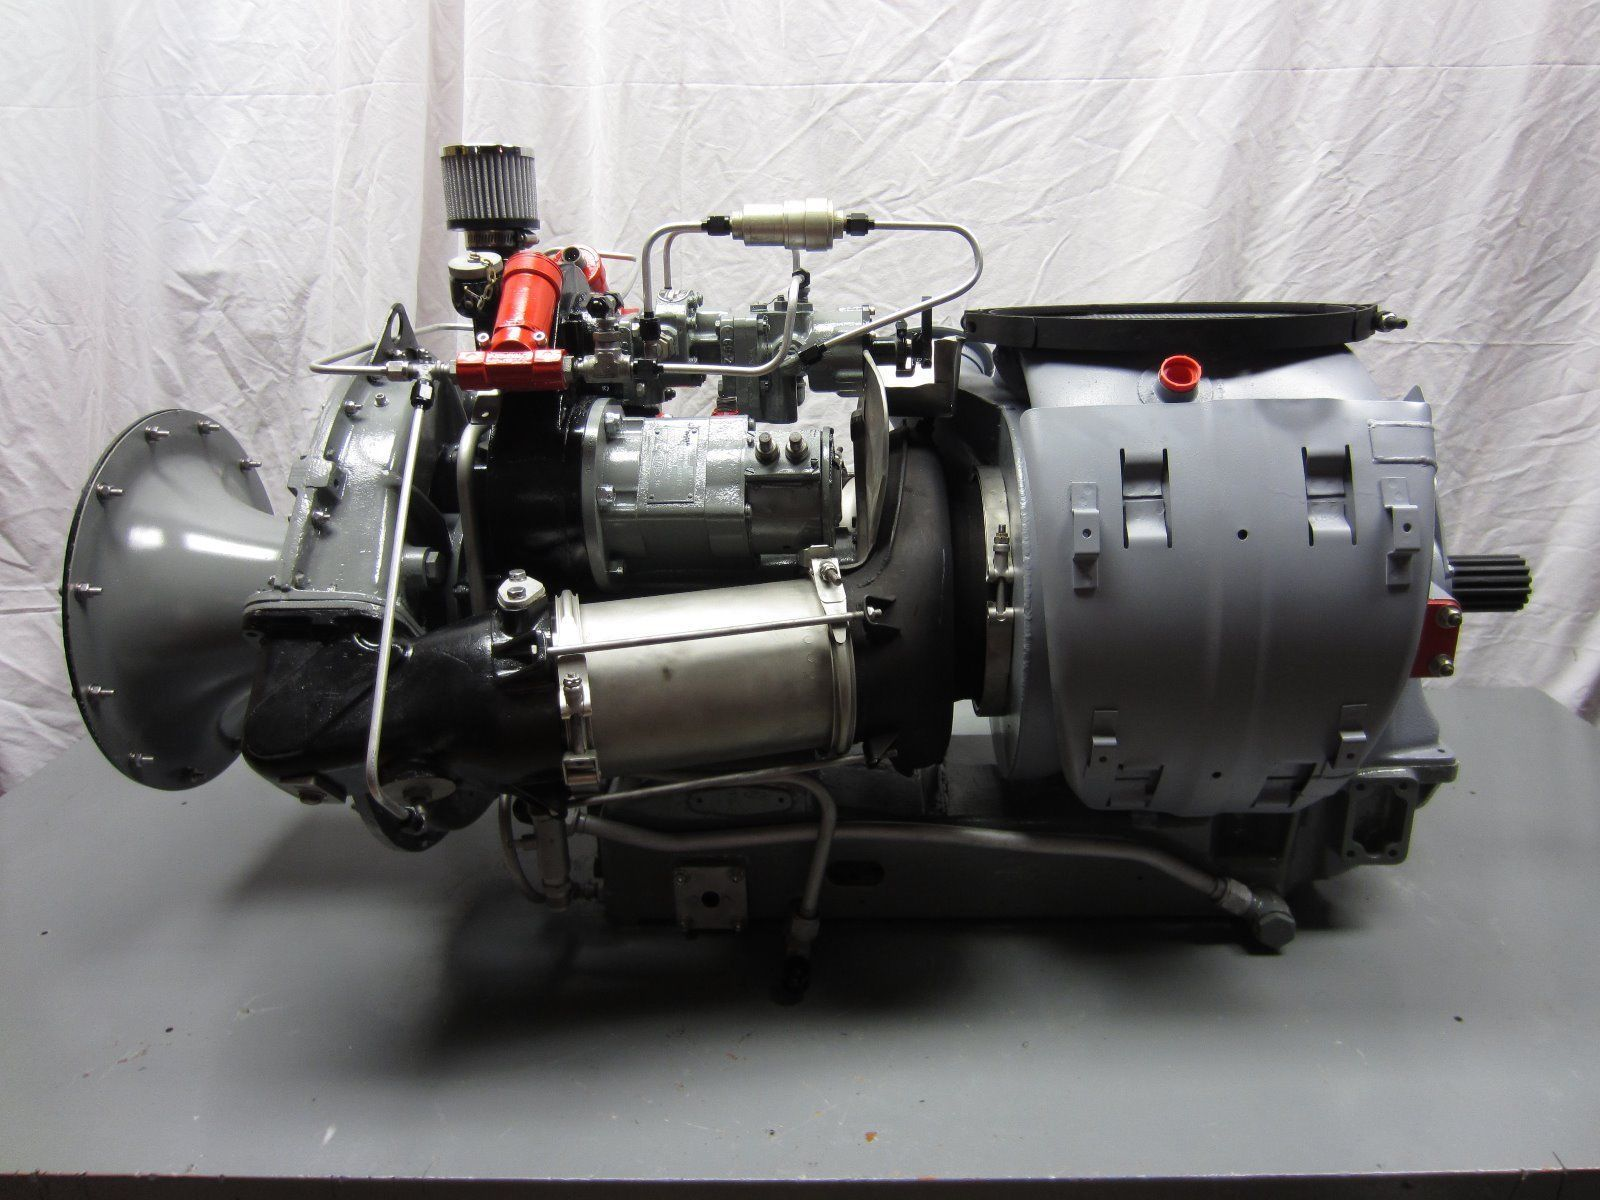 A vintage Boeing series 502 gas turbine engine with a Woodward